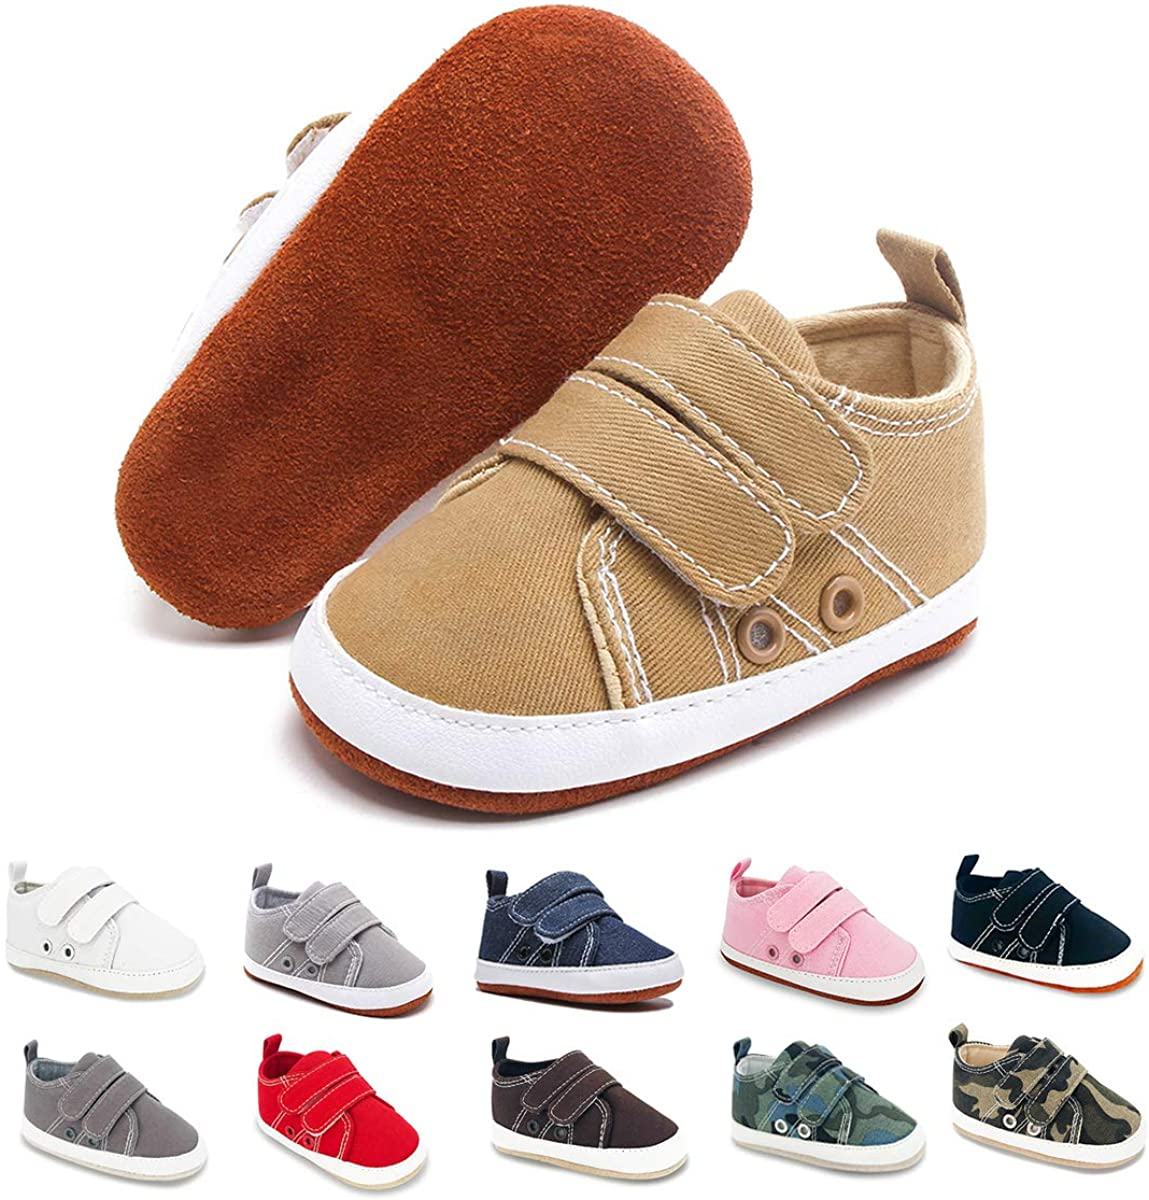 BENHERO Baby Boys Girls Shoes Canvas Infant Sneakers 100% Leather Anti-Slip Buttom Baby Walker Crib Shoes